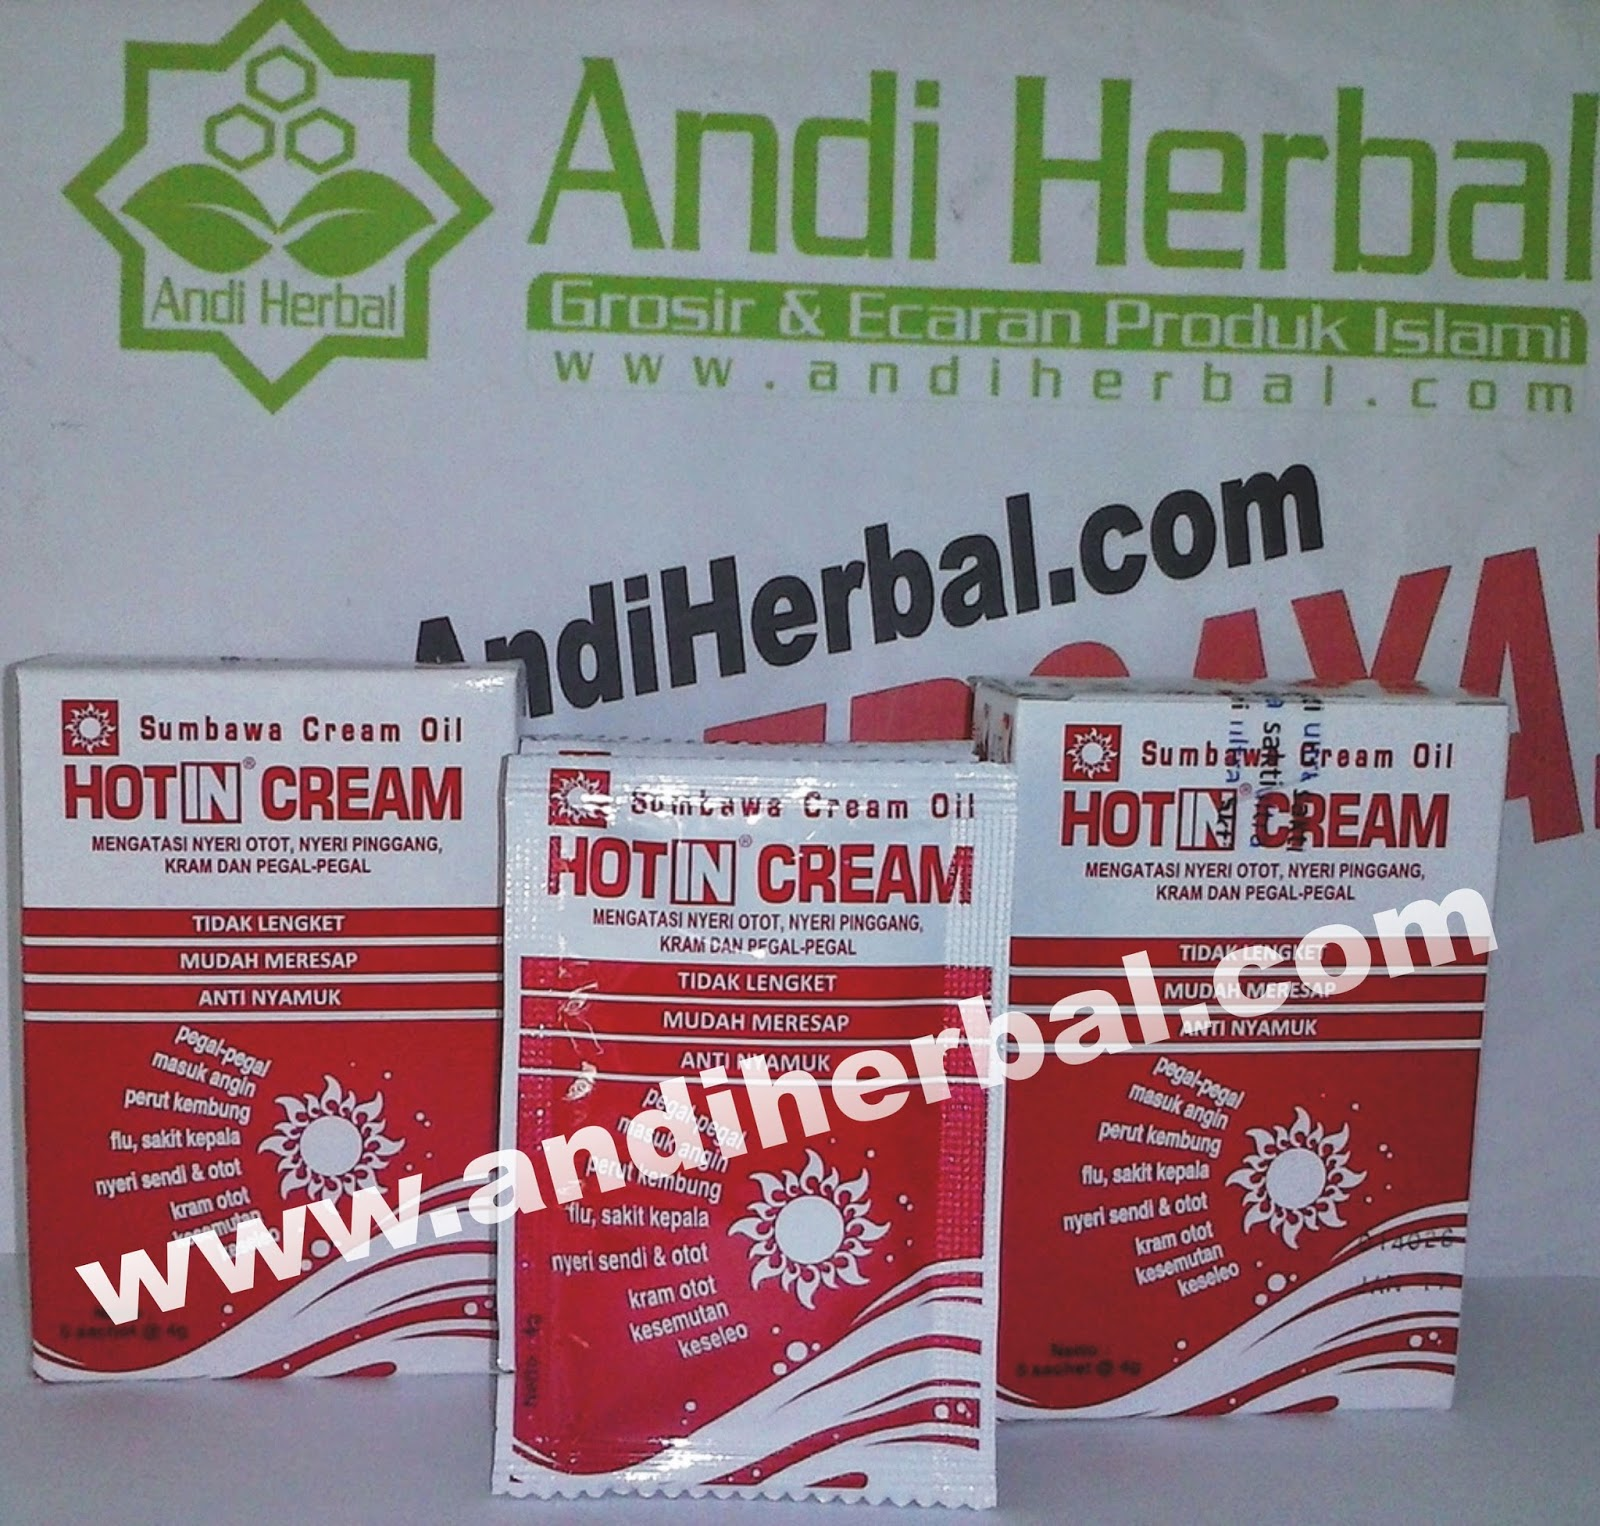 Hot In Cream Sachet Baru - Sumbawa Cream Oil Andiherbal.com